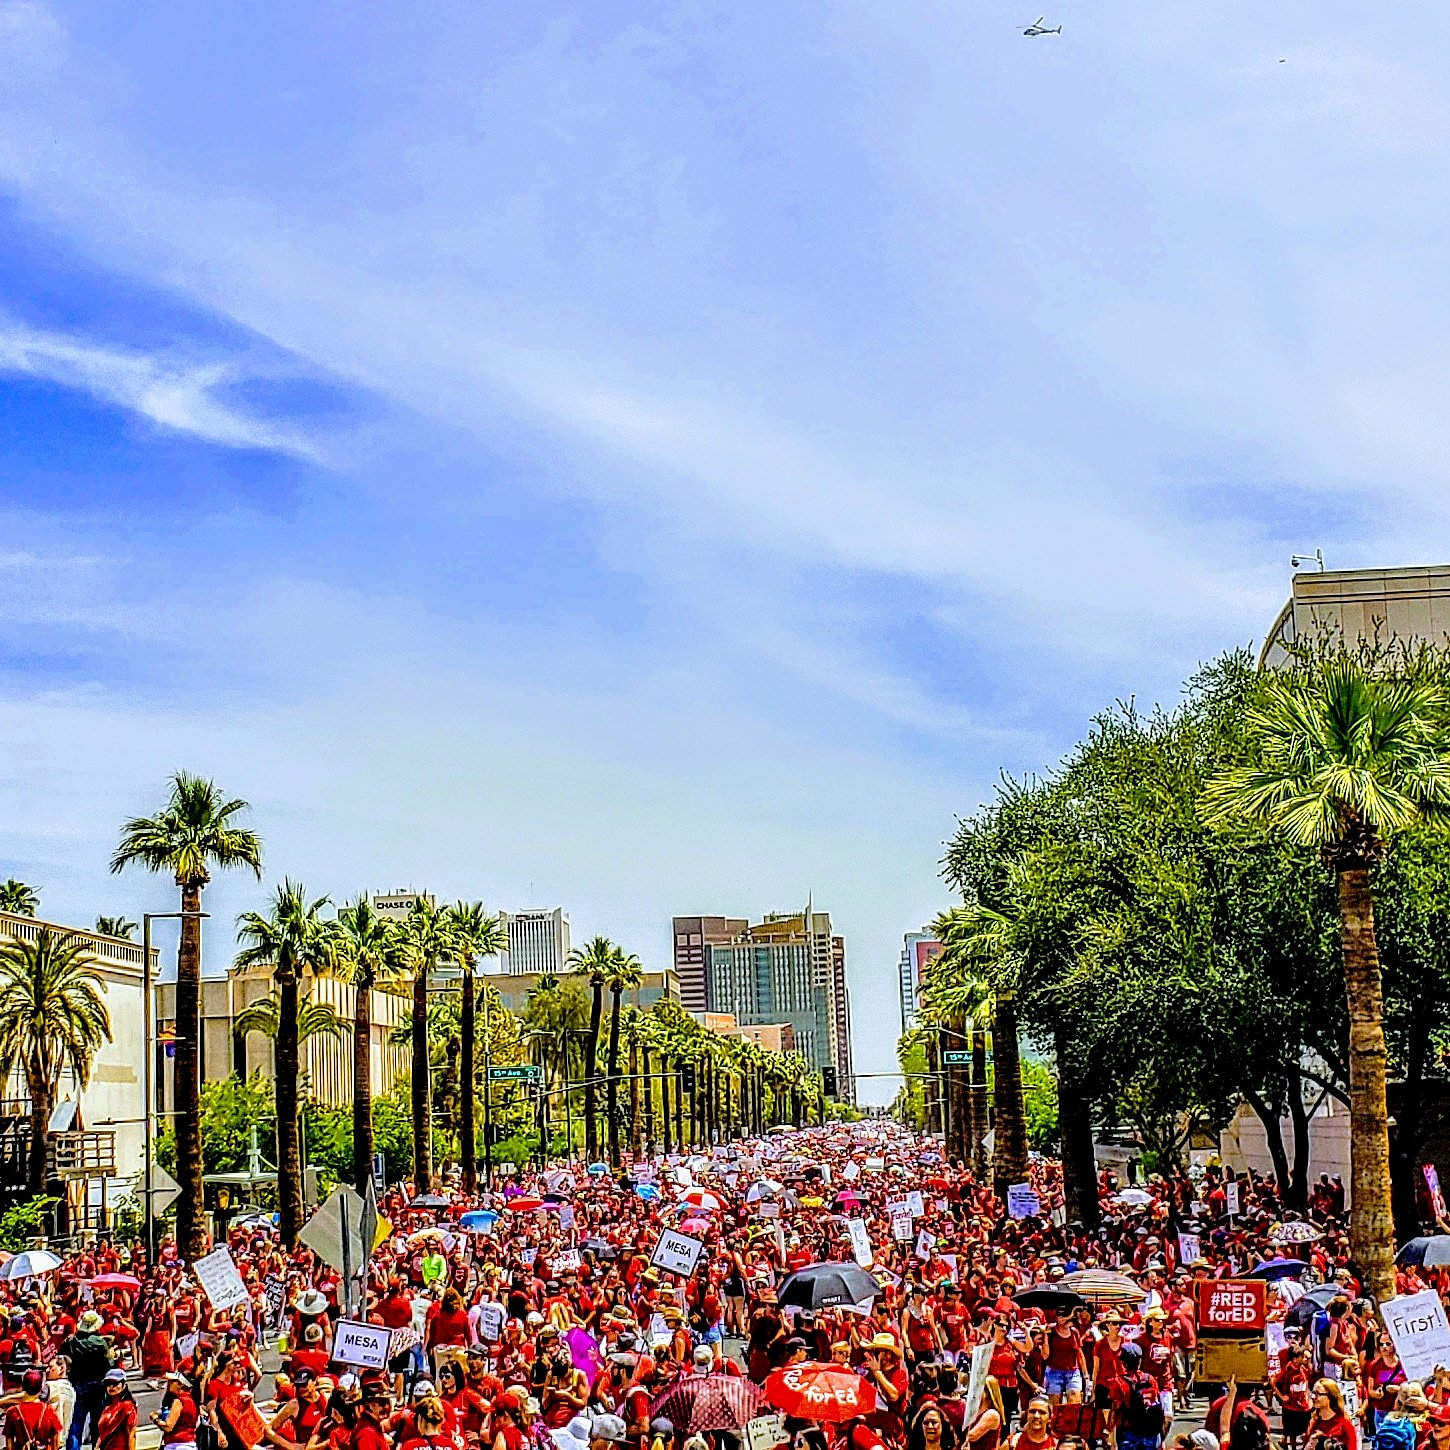 People march in front of the Capitol in Phoenix, Arizonia, U.S., April 26, 2018 in this picture obtained from social media. Jeremy Whittaker, City of Mesa Councilman/via REUTERS